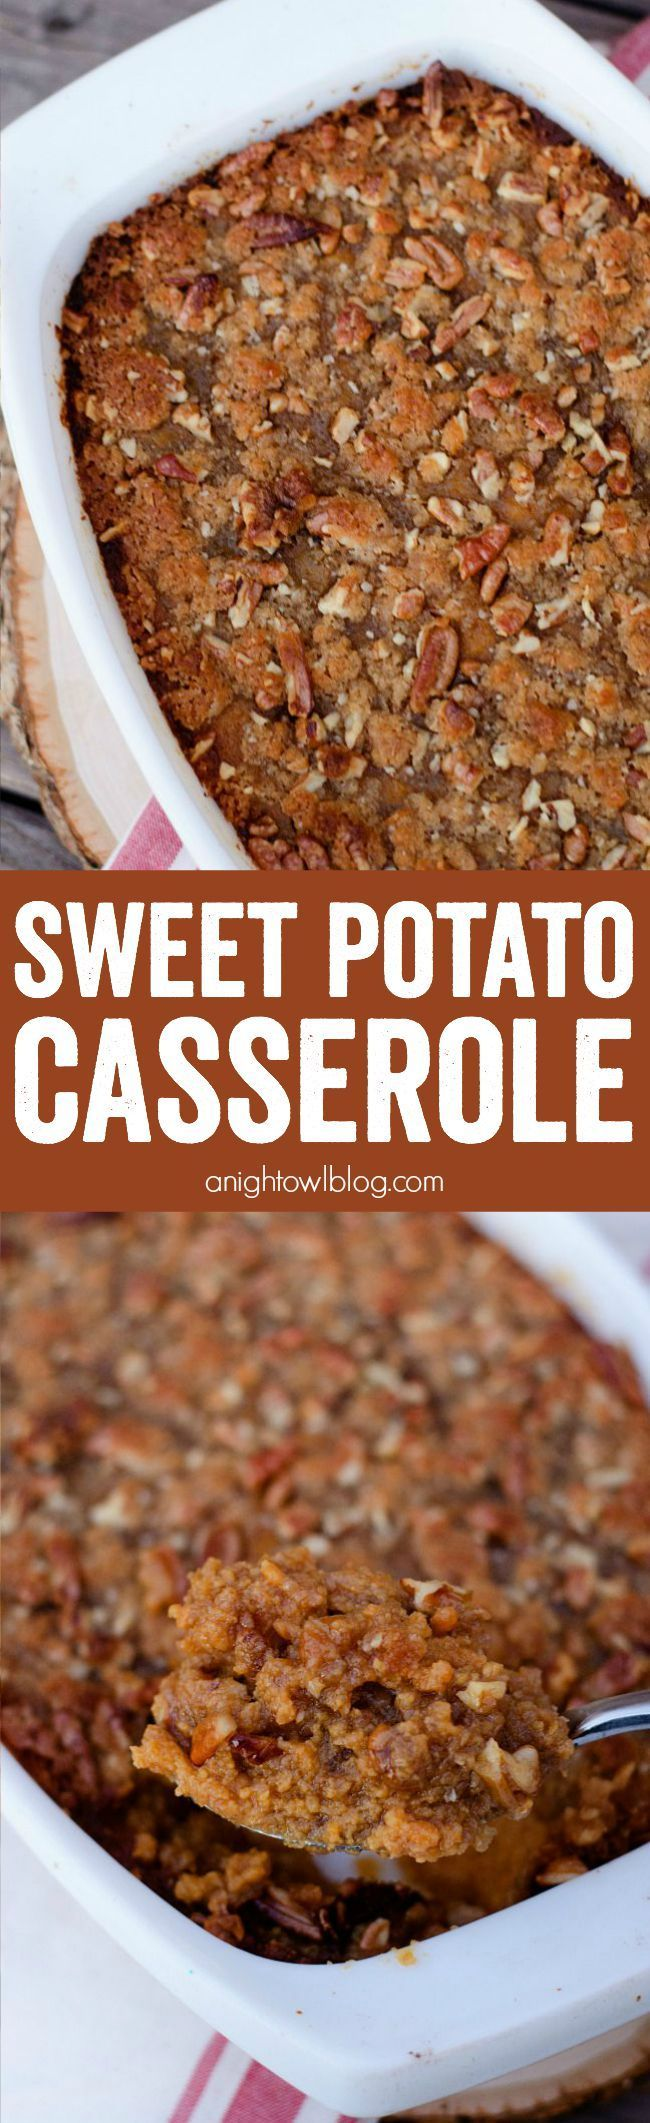 The BEST Sweet Potato Casserole I've ever had! Easy and delicious dish with a sweet and crunchy topping!: